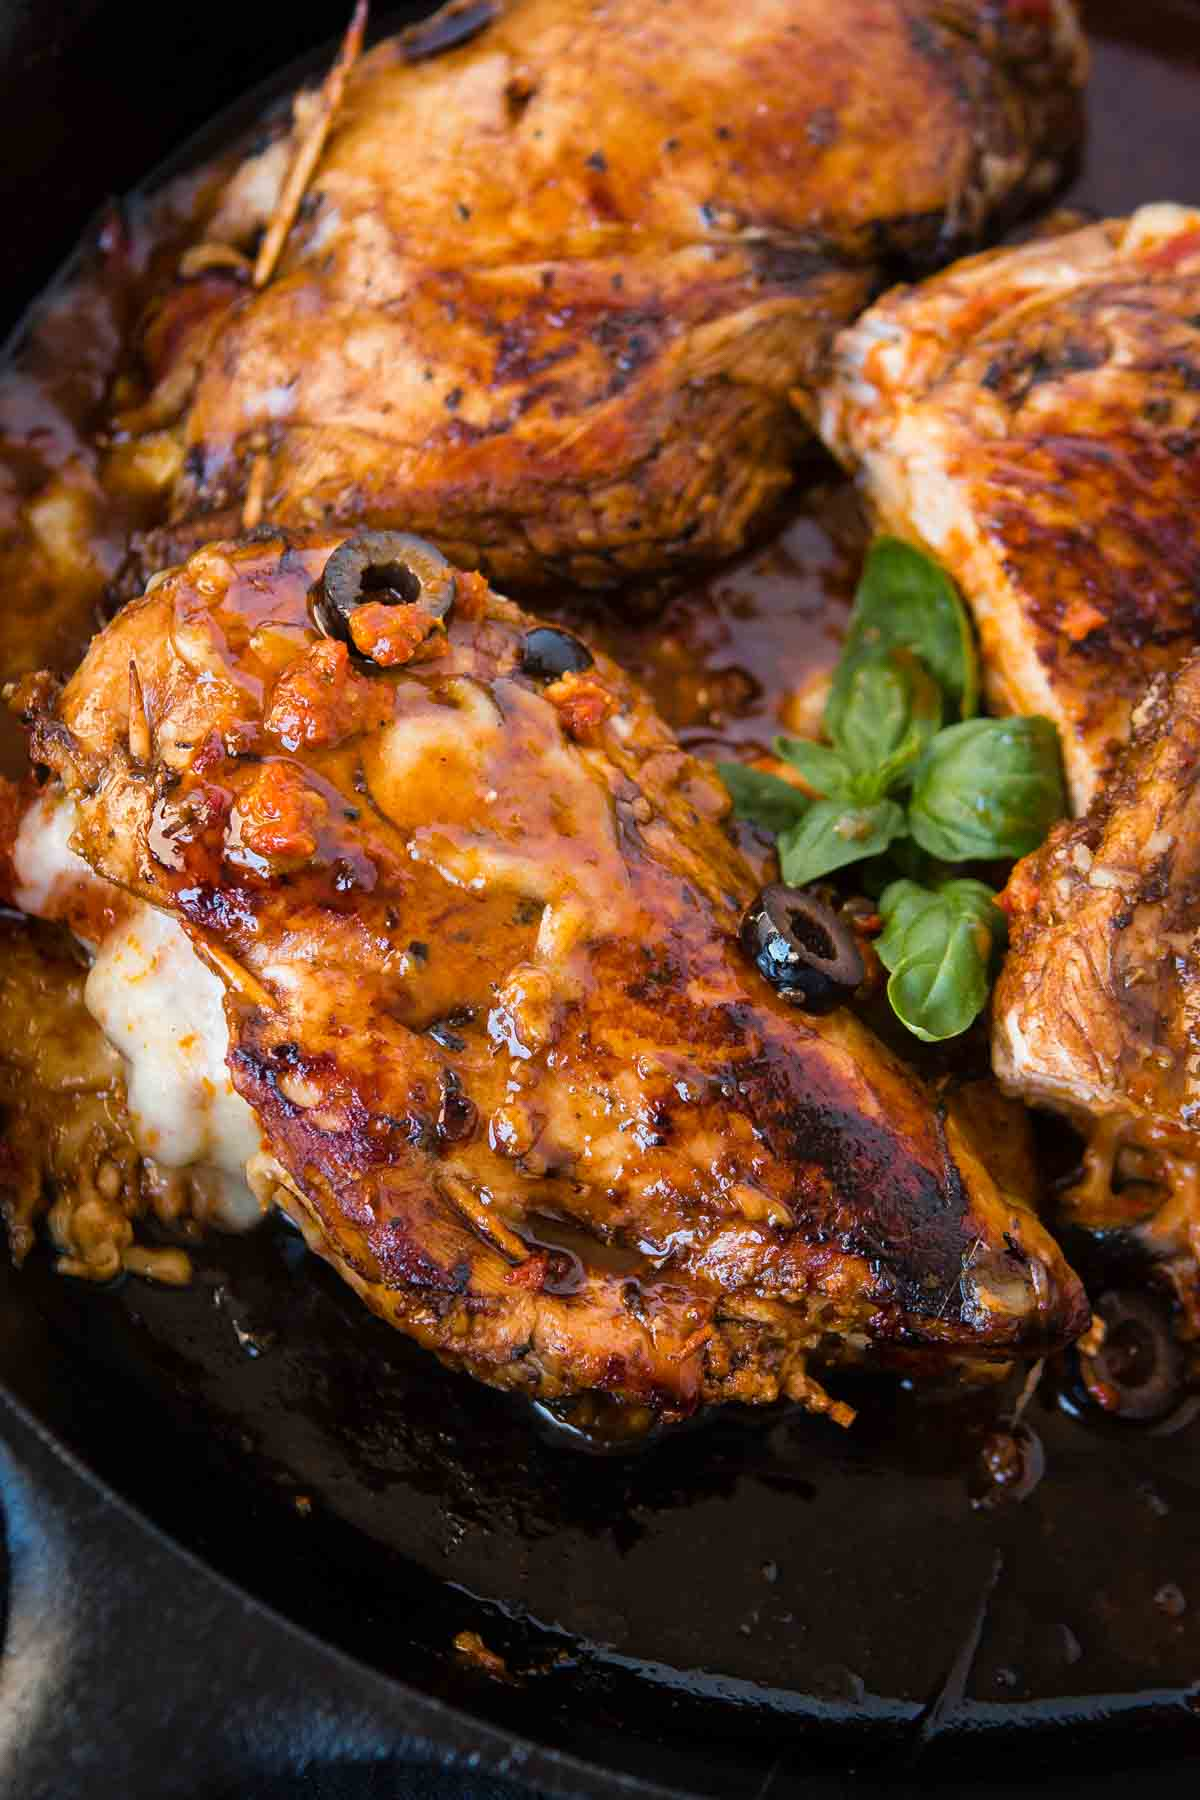 Looking for a quick and easy healthy dinner recipe? We've been loving this Cheesy Stuffed Mediterranean Chicken. It's full of sun dried tomatoes, olives and cheese! This chicken is first put into a delicious balsamic marinade and then stuffed with sun dried tomato pesto, cheese, spinach and olives! ohsweetbasil.com